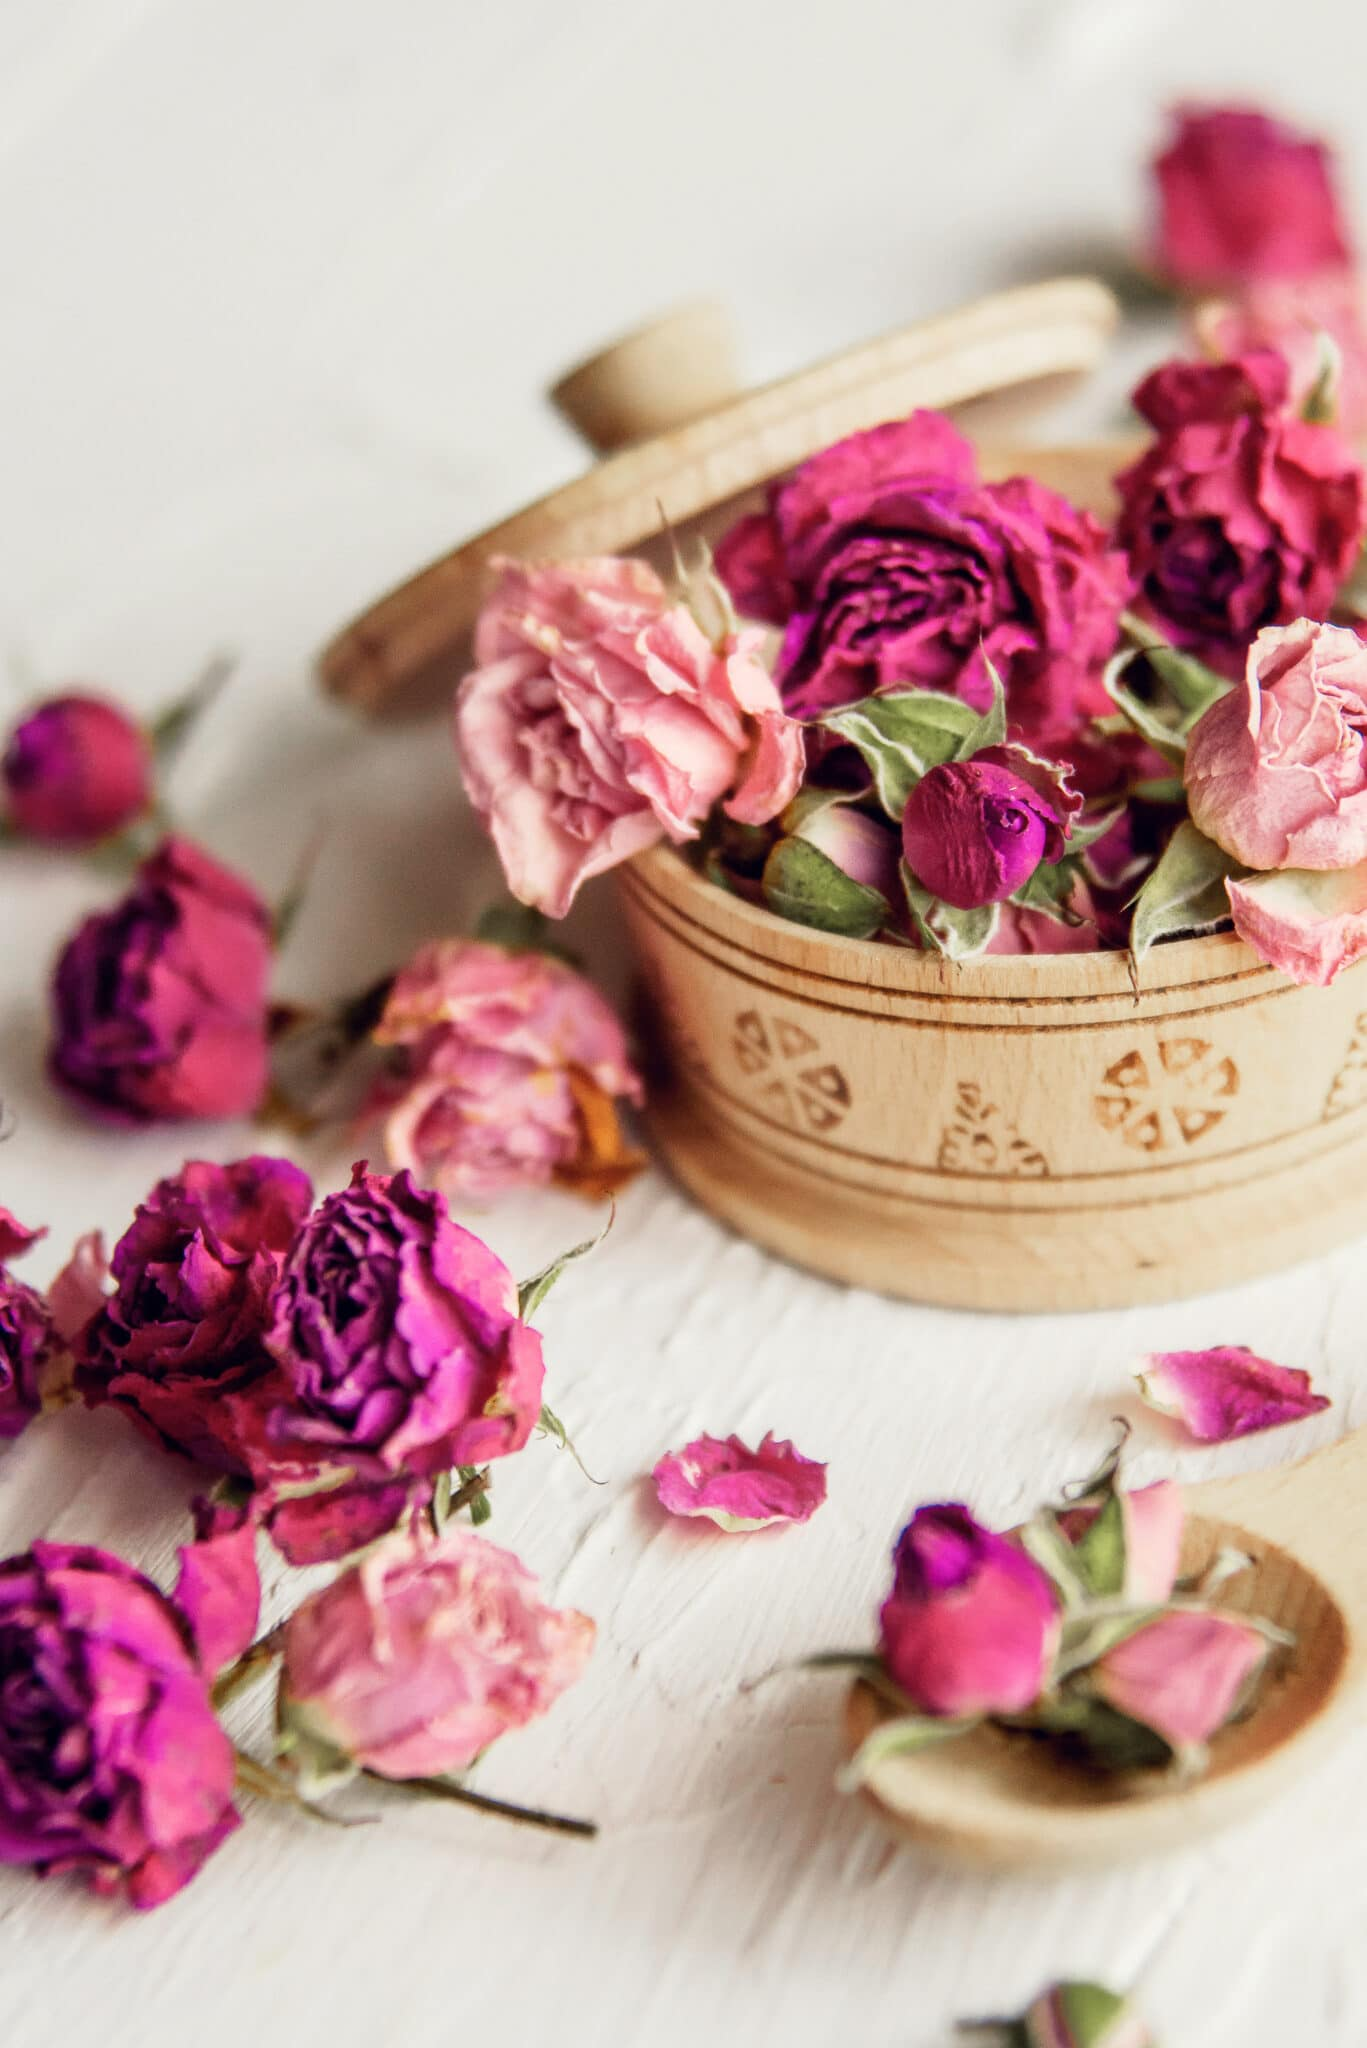 Rose potpourri in a small wooden covered bowl against a rustic white wooden table top.